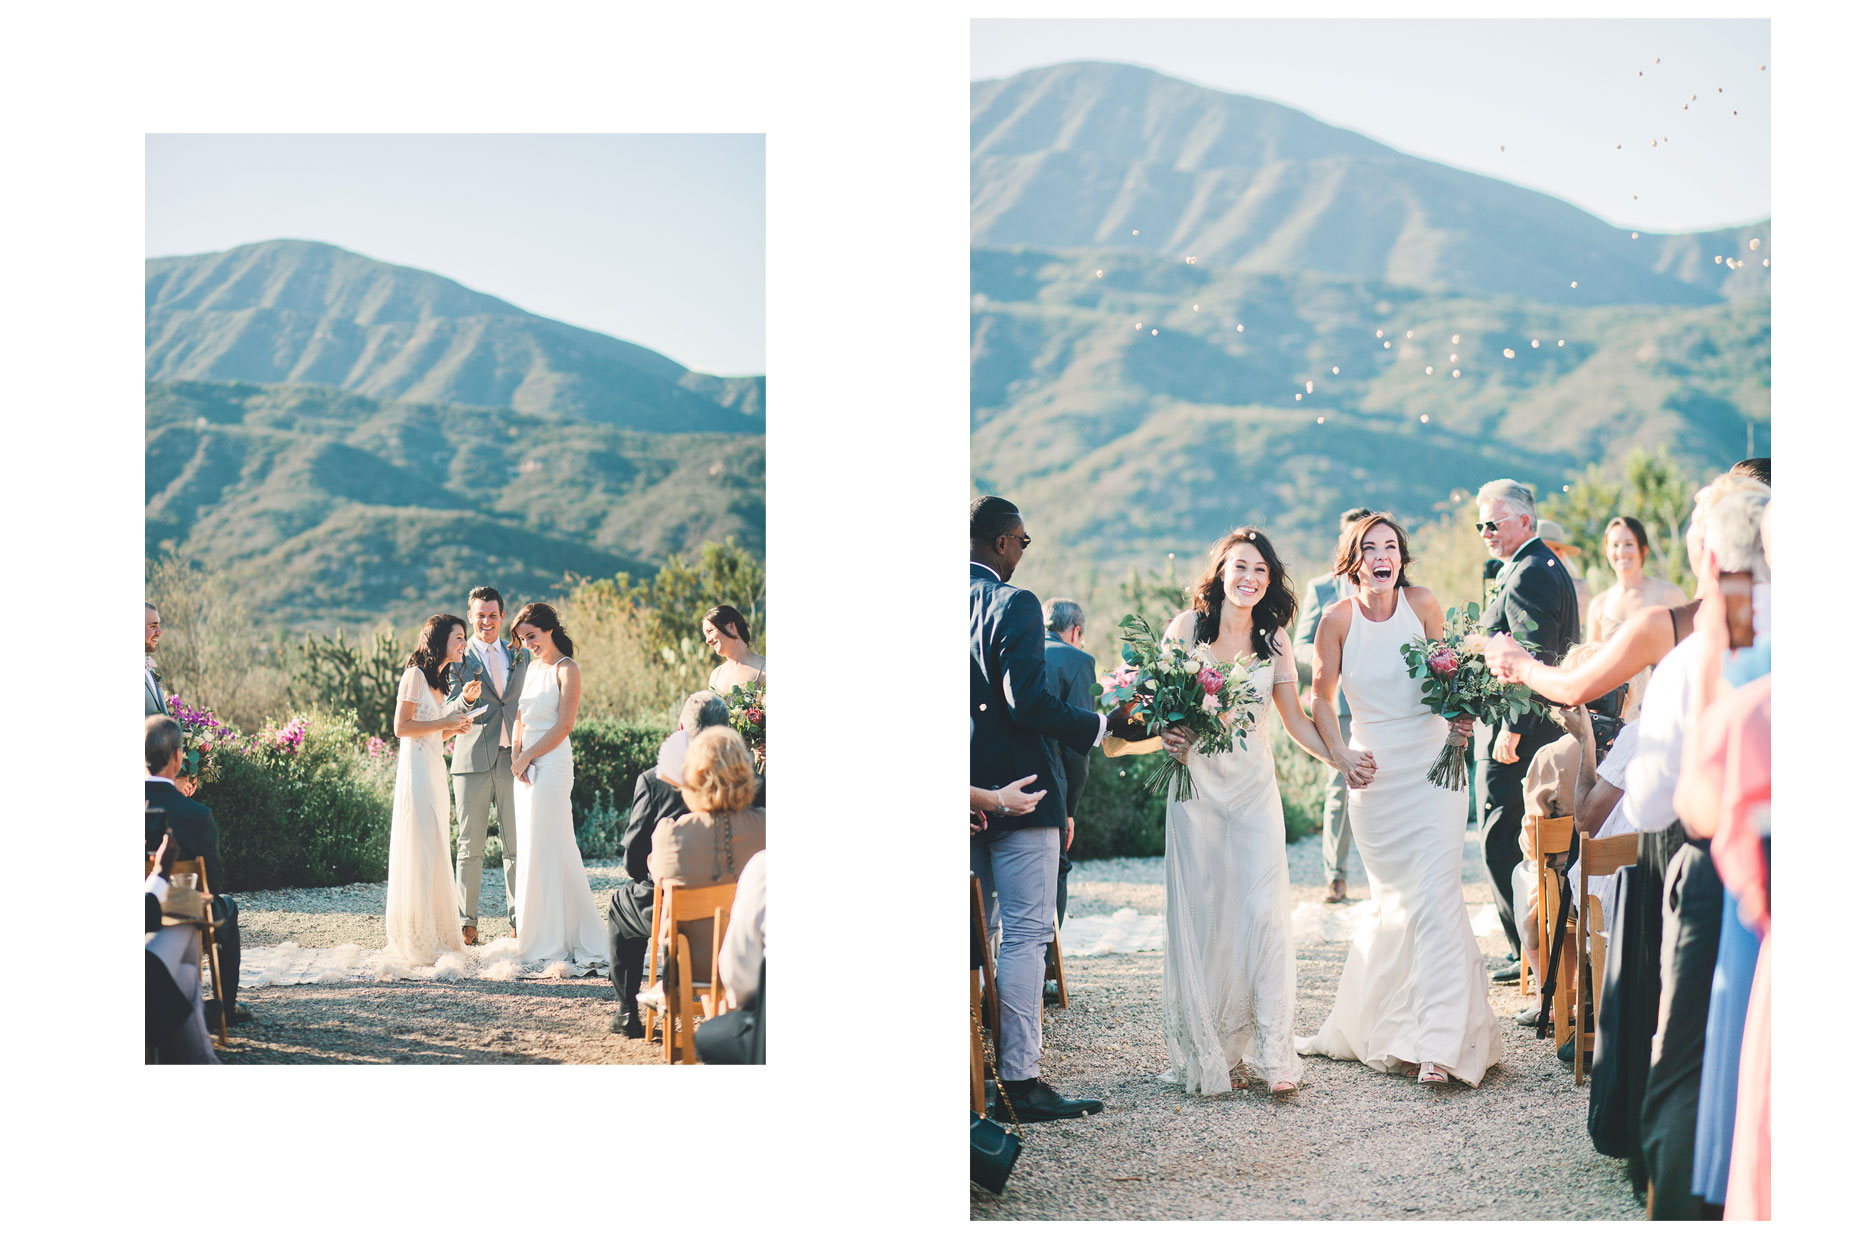 Ojai-Wedding-photographer,-Gay-and-lesbian-wedding-LA-Photographer-Ojai-Rustic-indie-Modern-wedding-photographer